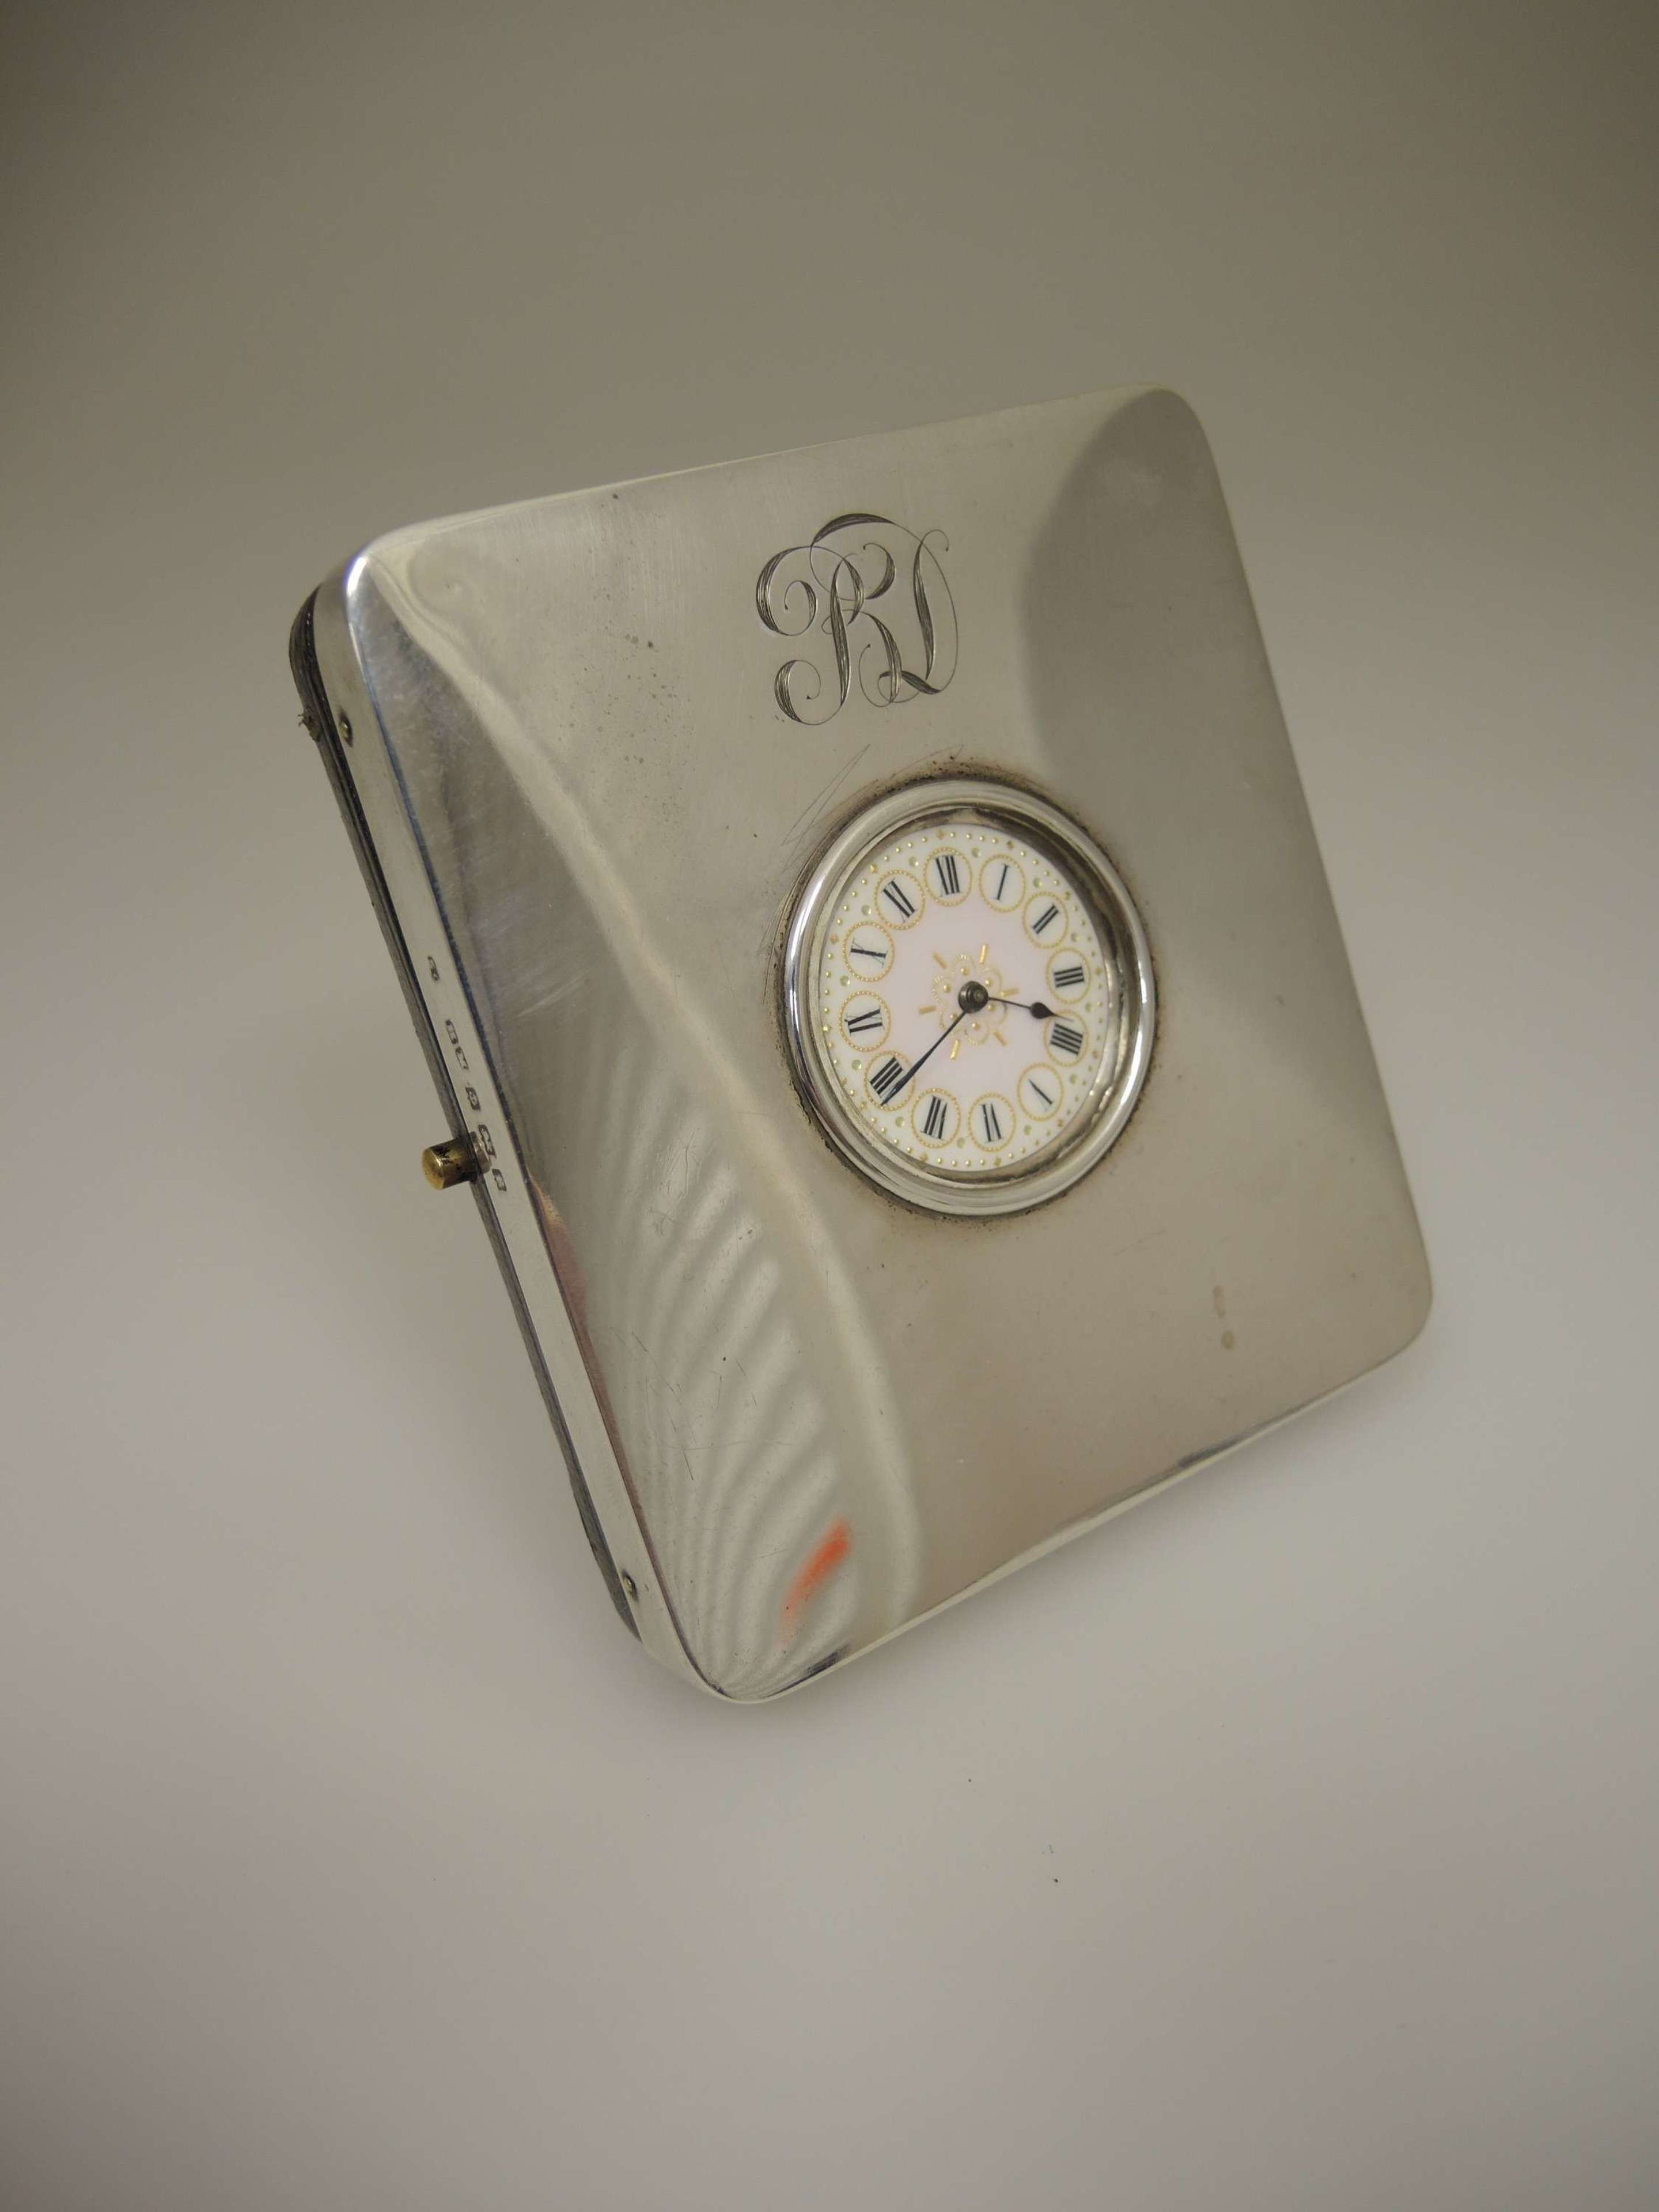 English silver watch stand with a fancy dial fob watch c1905